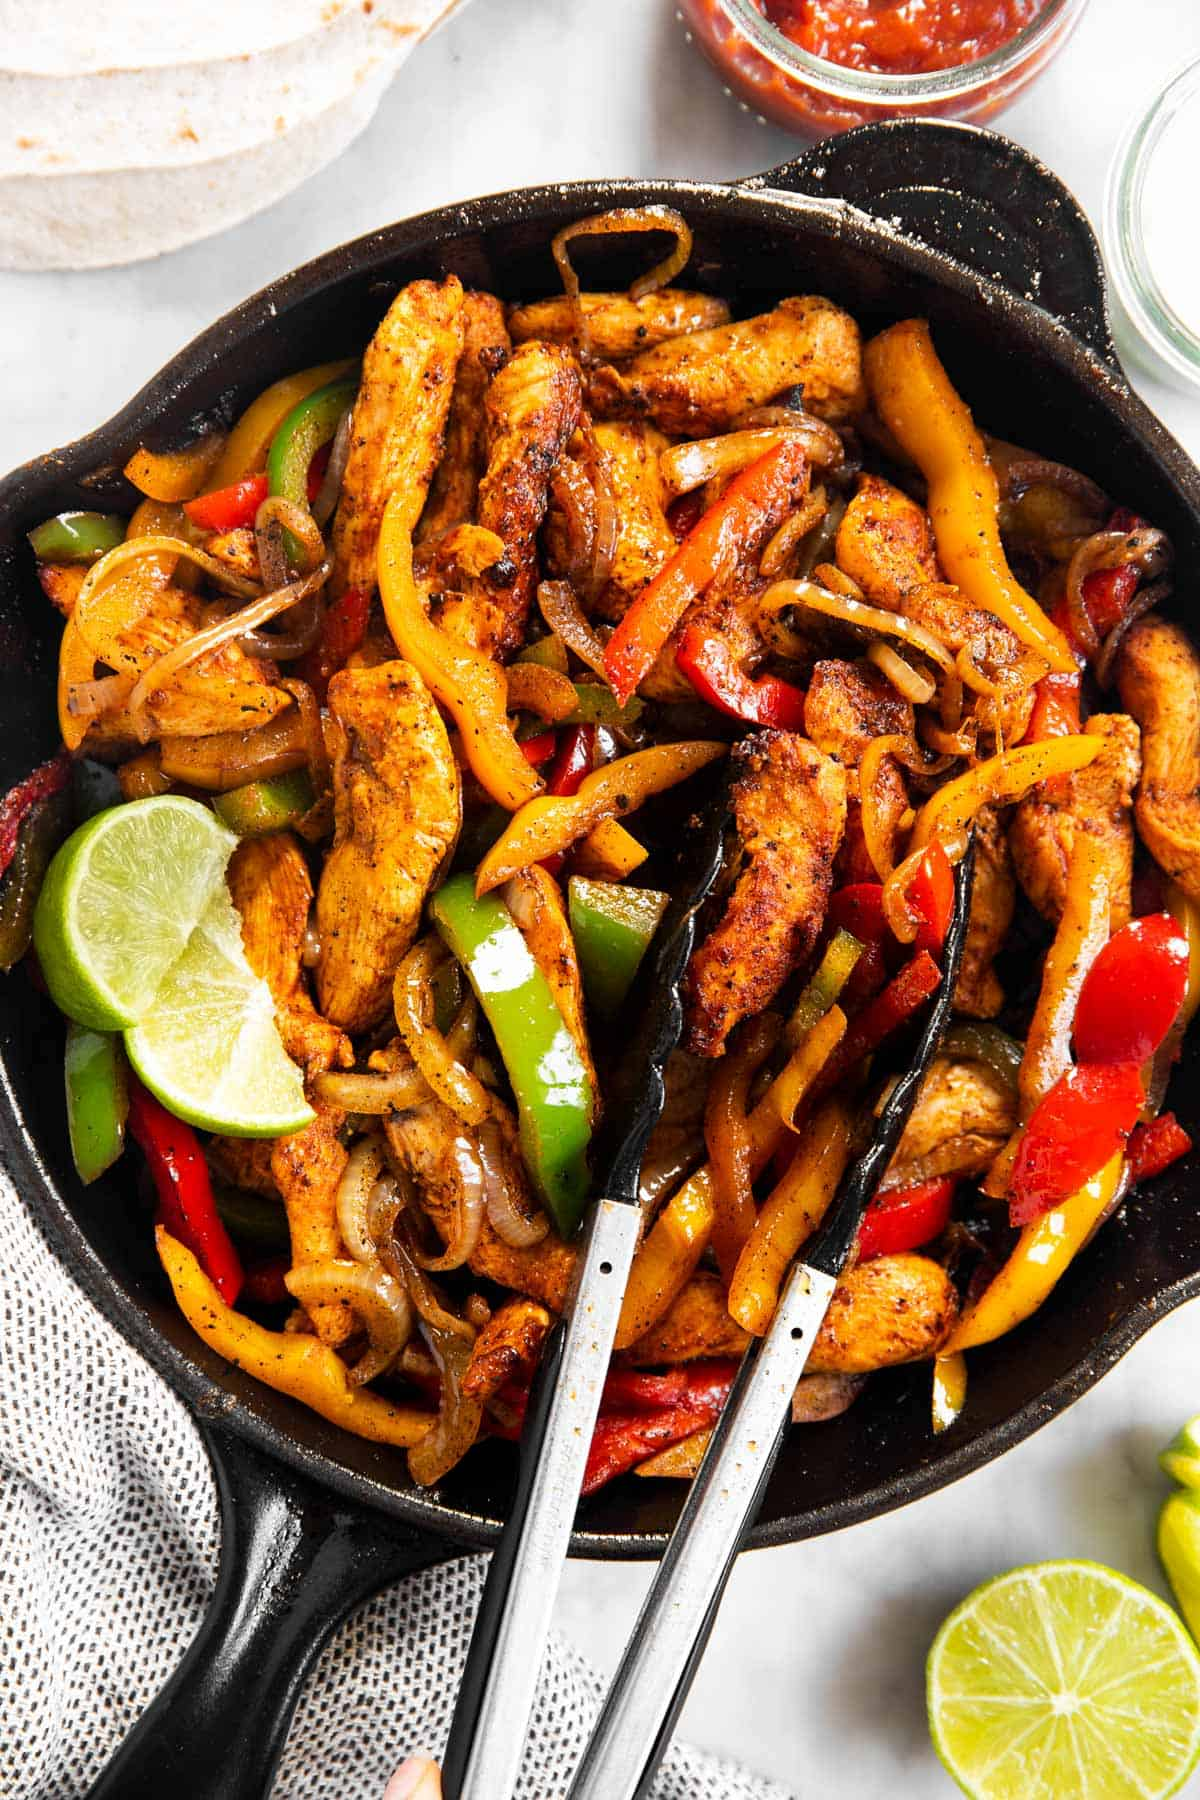 chicken fajita filling in black skillet with kitchen tongs surrounded by fajita toppings and wraps